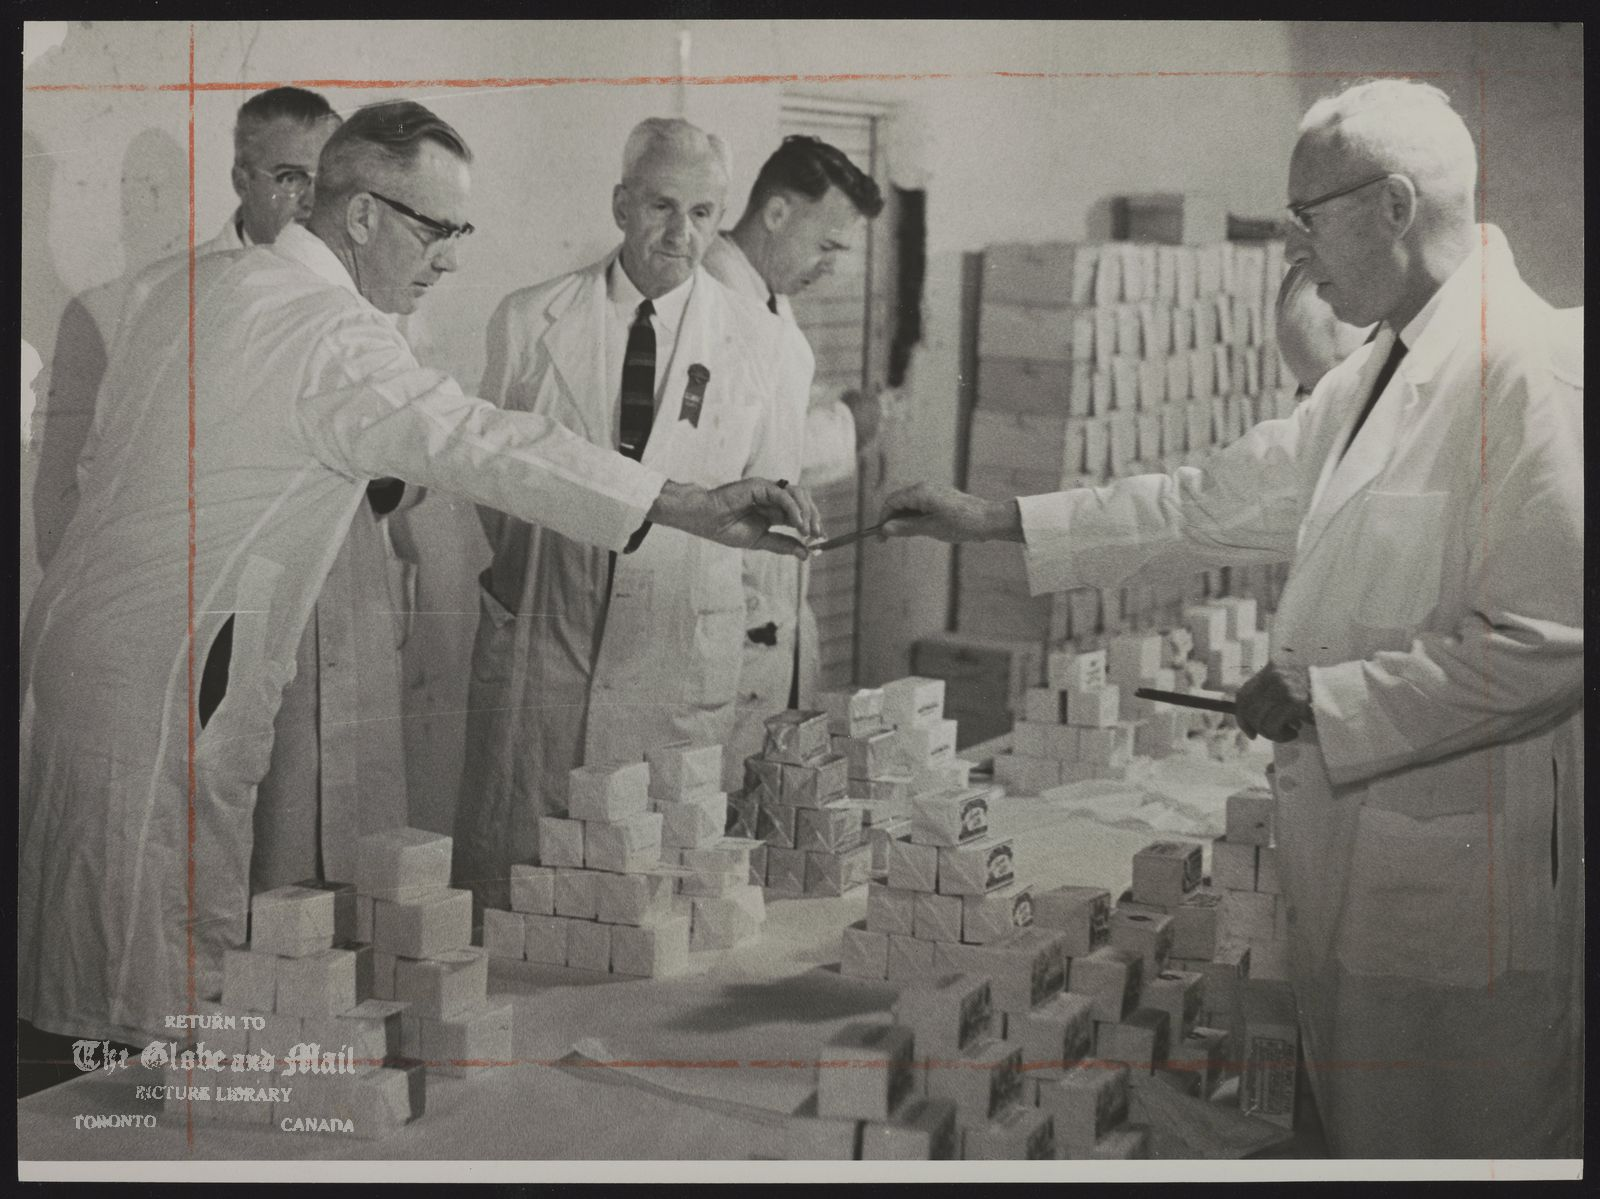 BUTTER Butter judges begin work at the Canadian National Exhibition. V. E. VanDeusen, head of Toronto dairy products division, Federal Department of Agriculture (left), takes butter sample from Robert Carleton, Saskatoon office (right). Onlookers are (from left) G. M. Borland, chief butter inspector in Ontario; Albert Baker, CNE dairy superintendent; Leslie Farquharson, Ontario Agriculture Department field man.